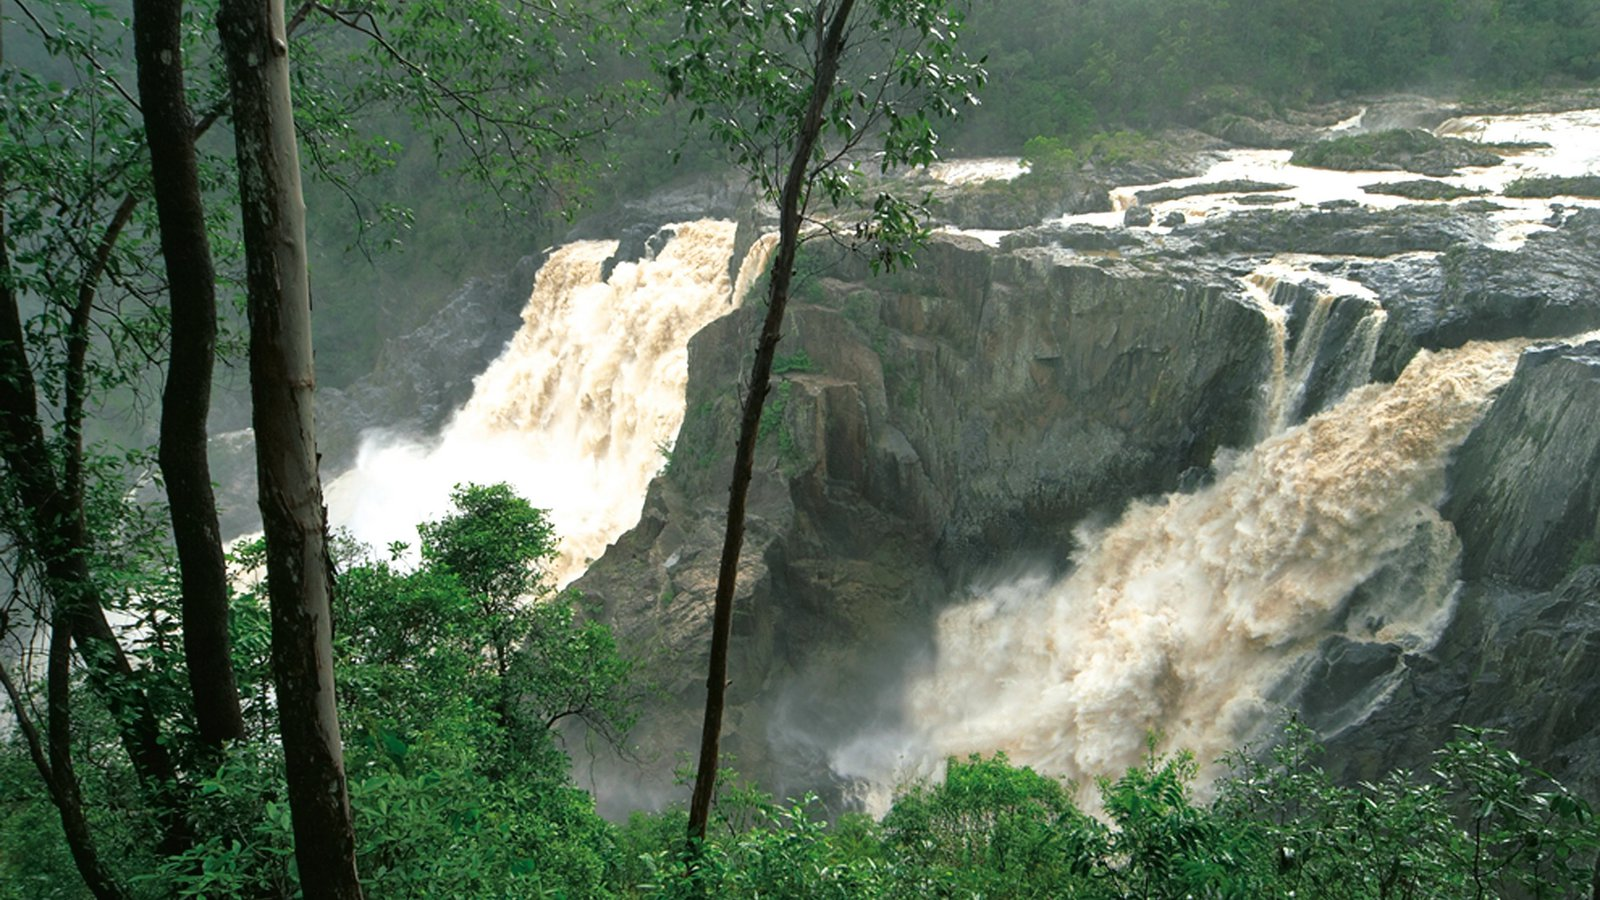 Barron Gorge National Park which includes a gorge or canyon and a cascade